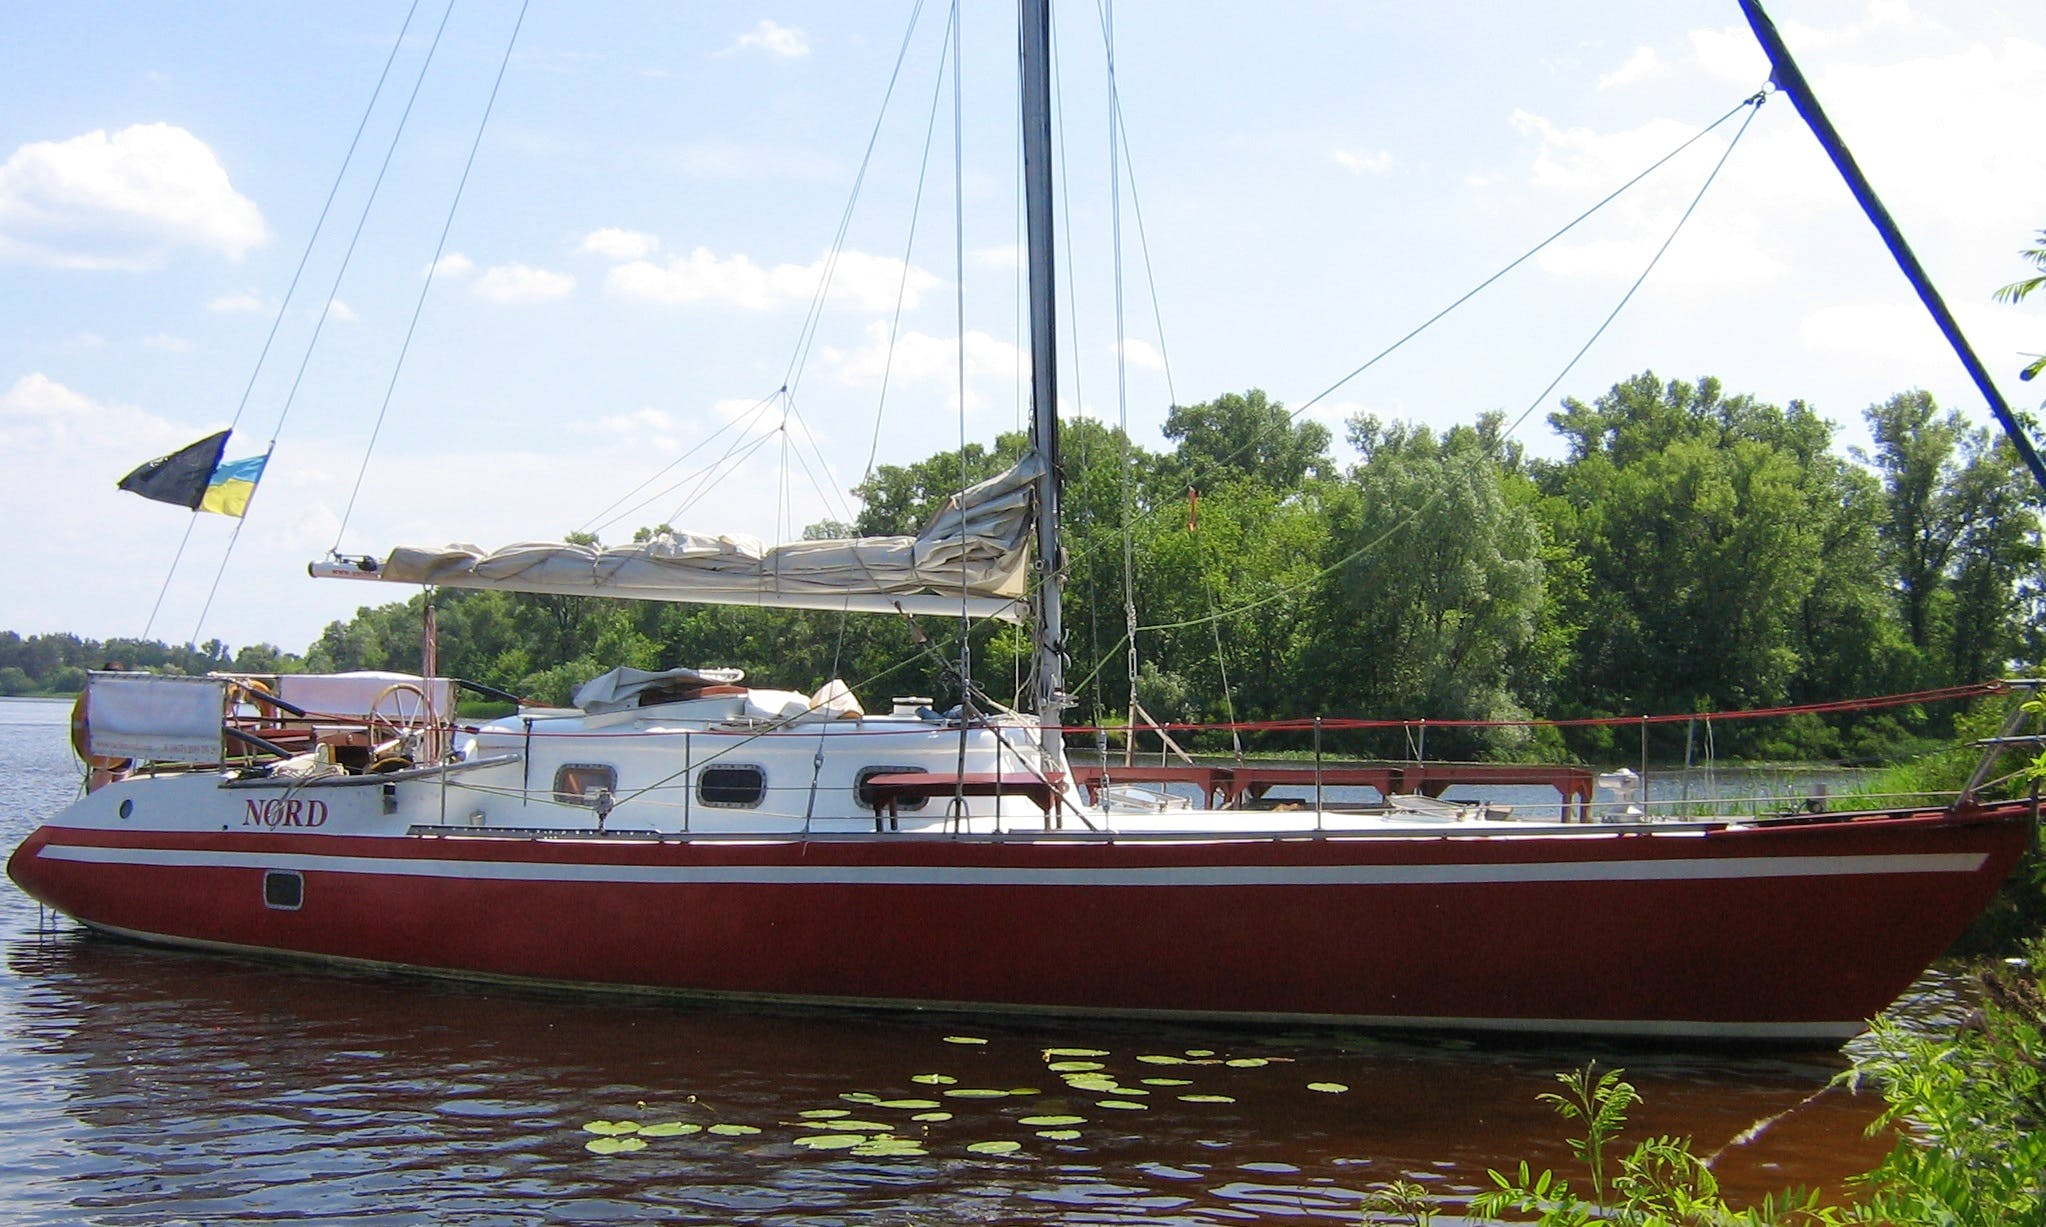 Sailing Charter in Kyiv, Ukraine